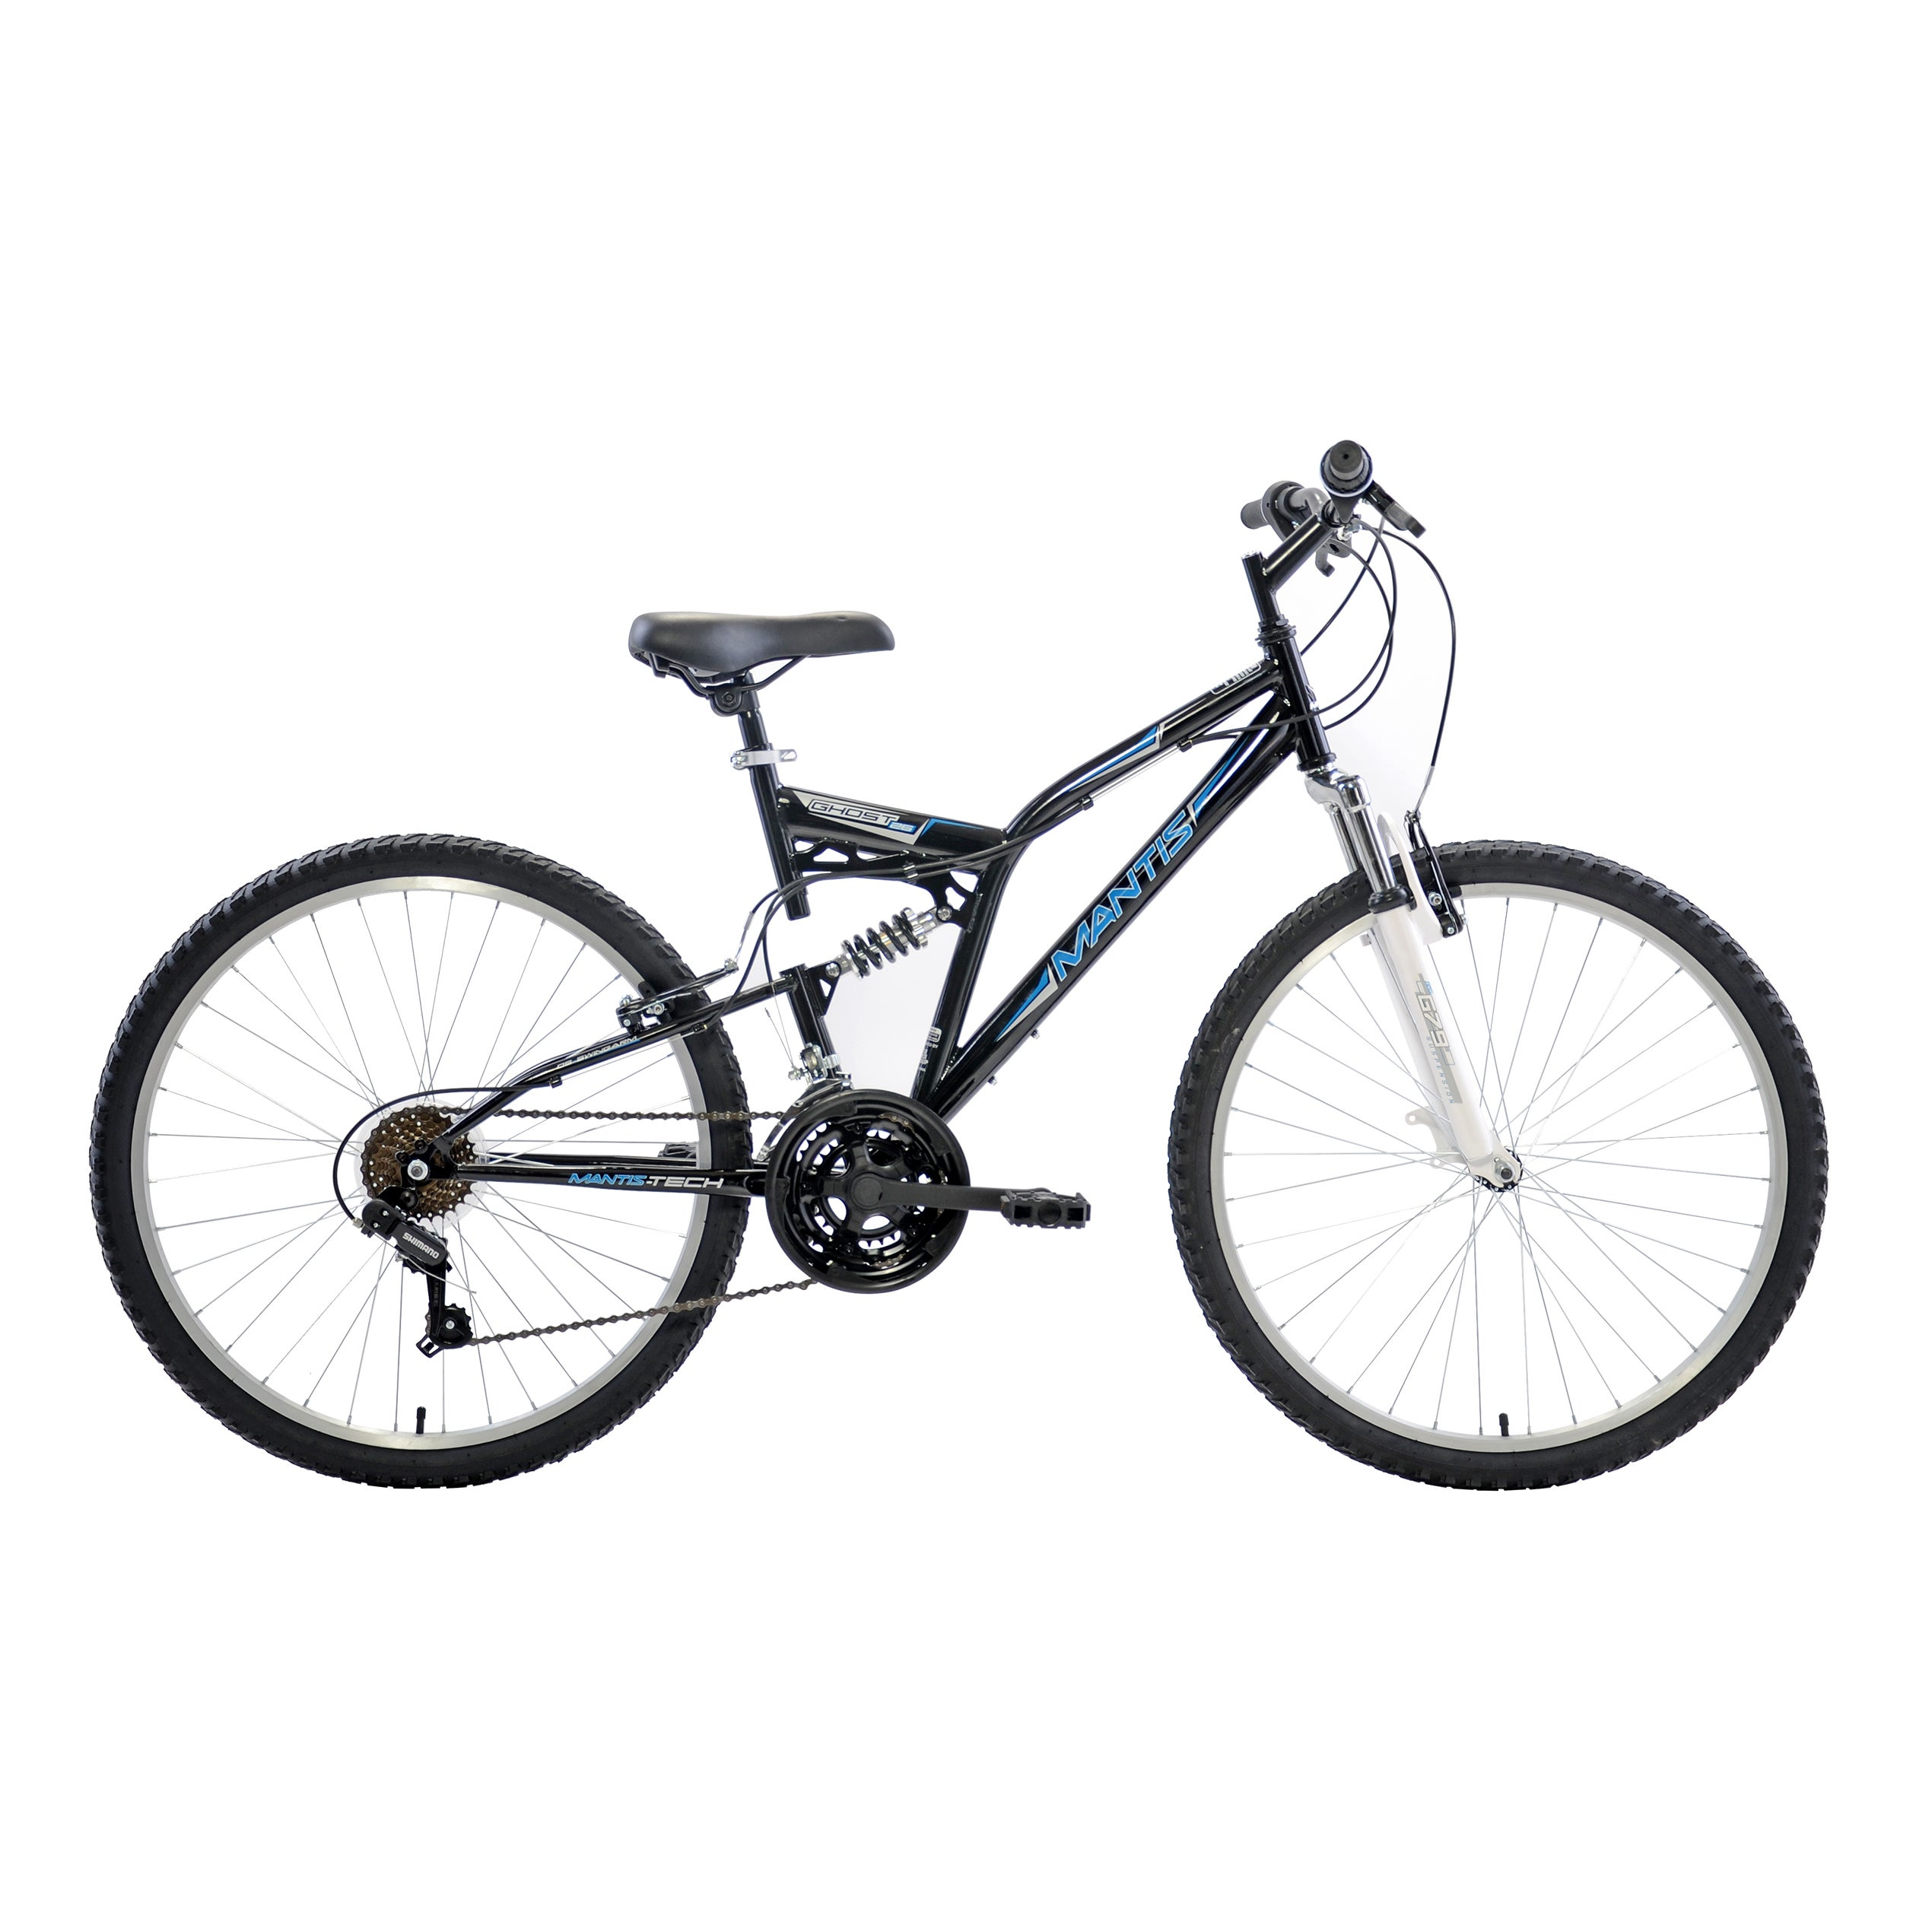 Mantis Ghost 26-inch Full Suspension Bicycle (26 inch), S...